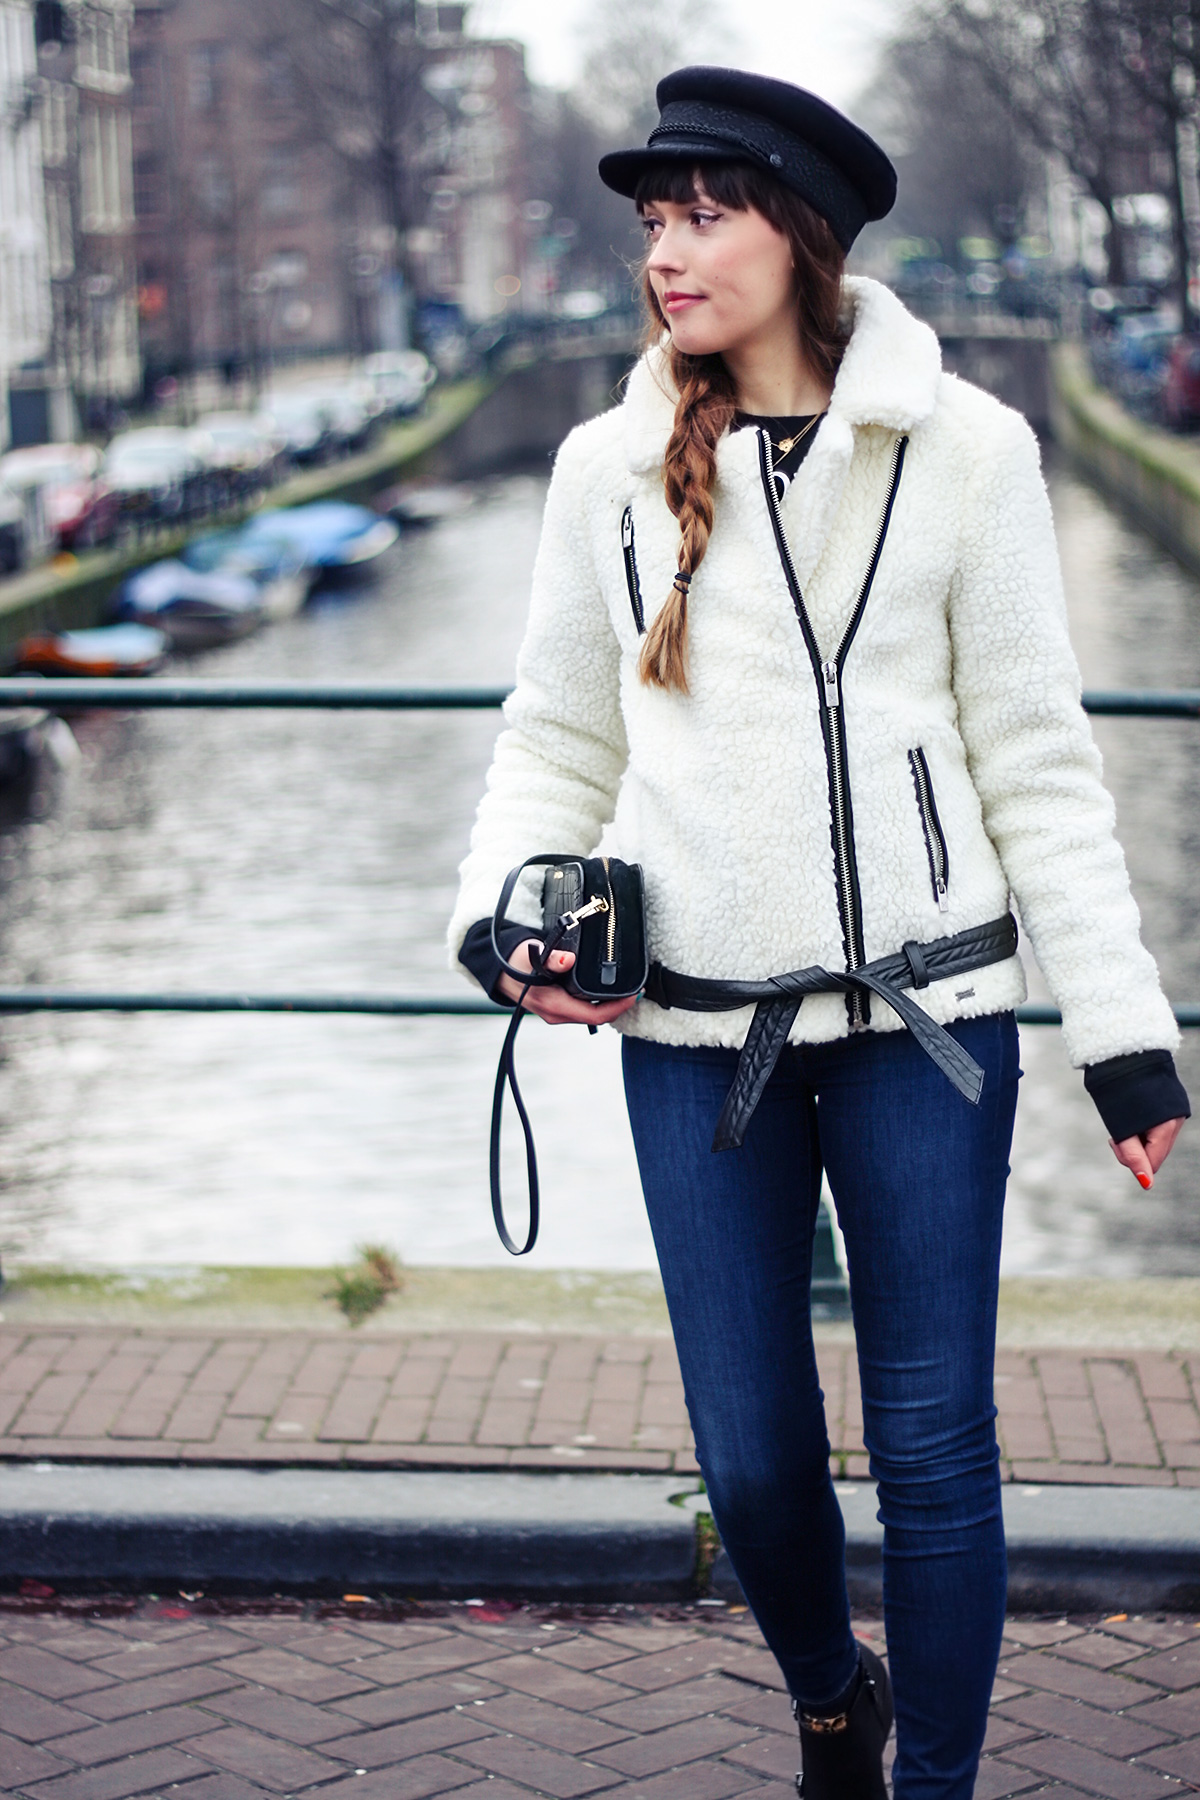 maison-scotch-teddy-biker-jacket-7-for-all-mankind-skinny-jeans-amsterdam-fashion-blogger-outfit-8